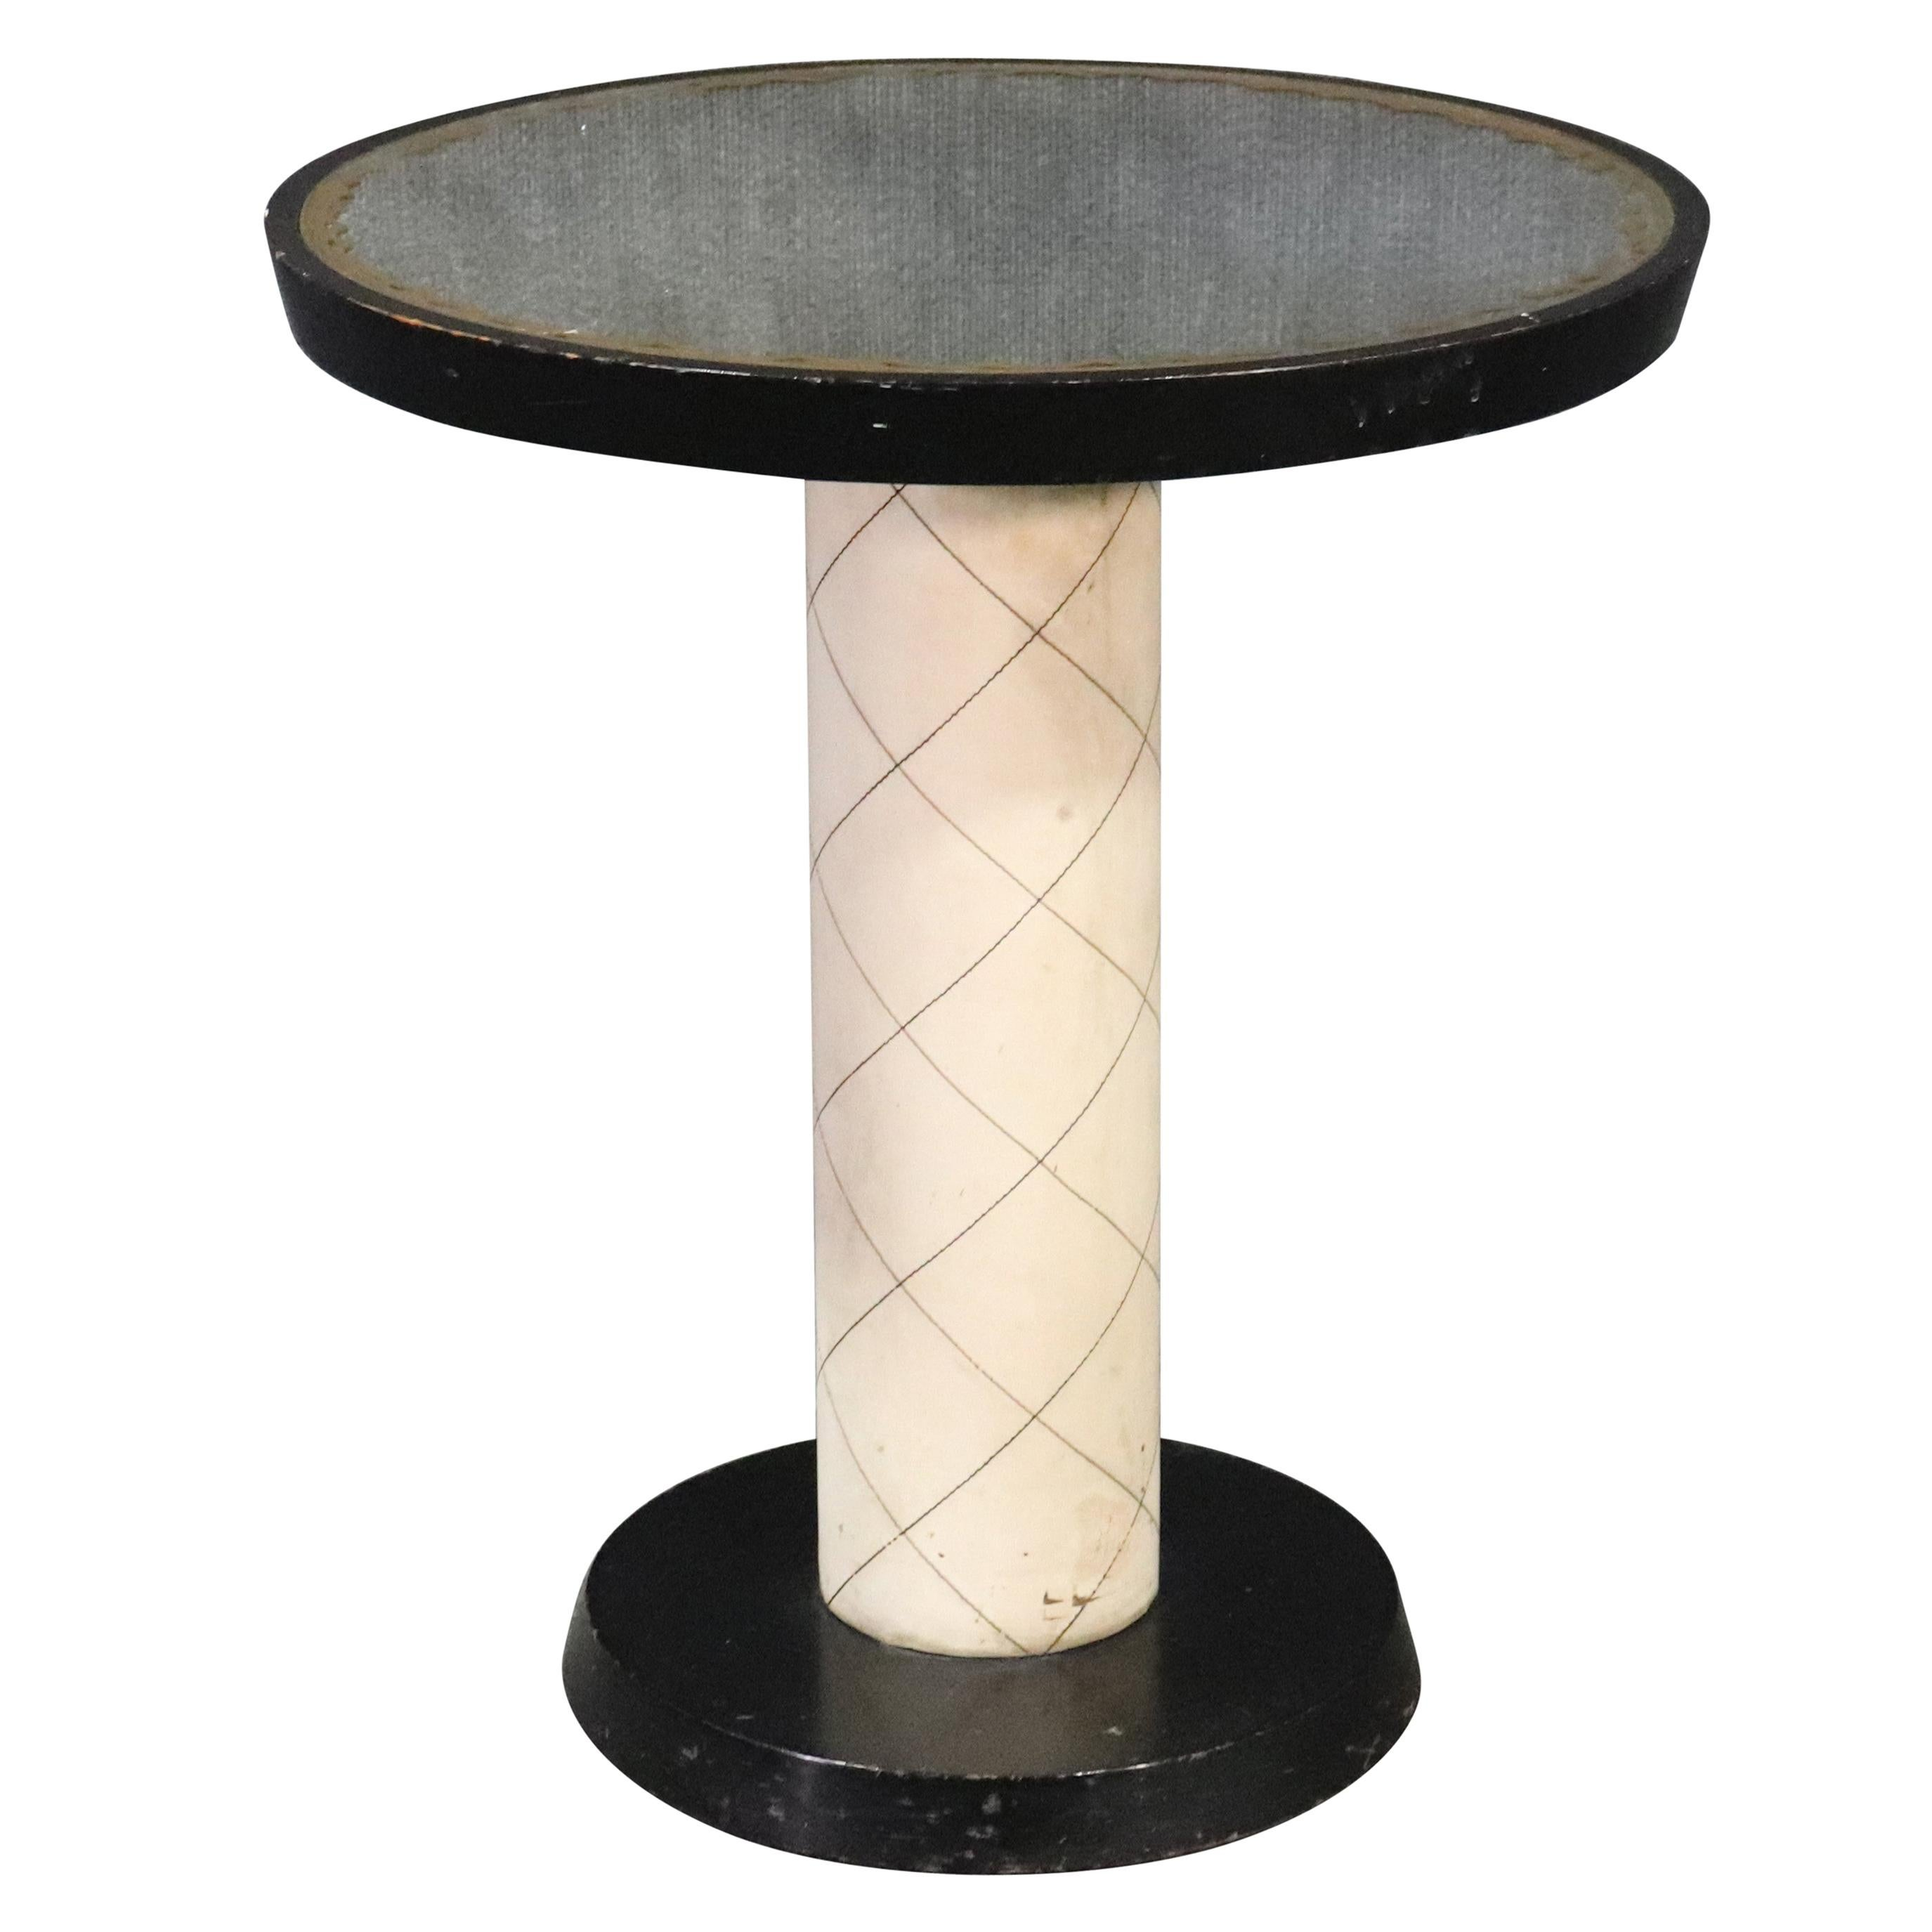 French Art Deco Style Mirrored Top Center Table